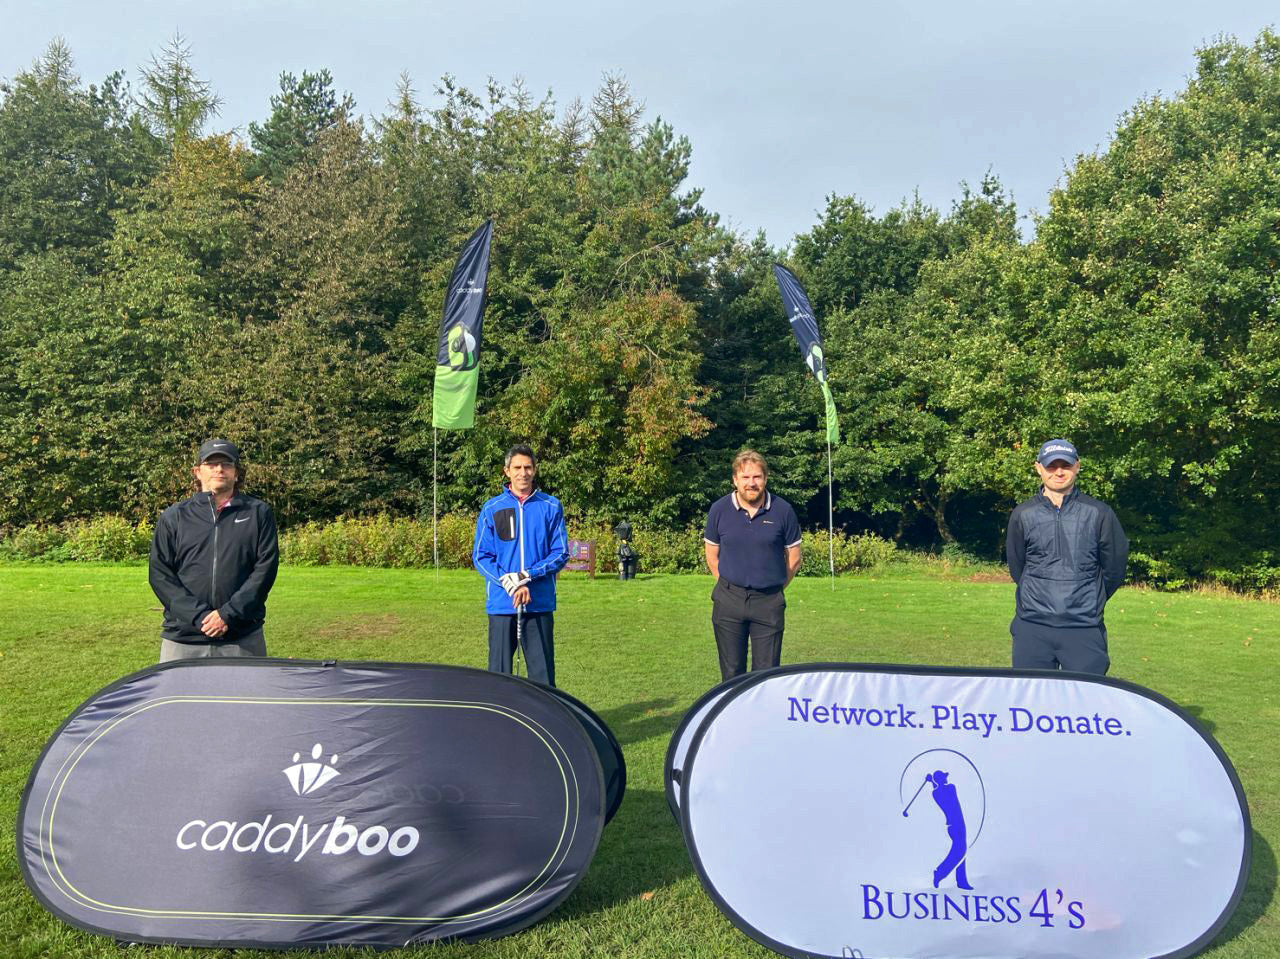 golfers at business fours event